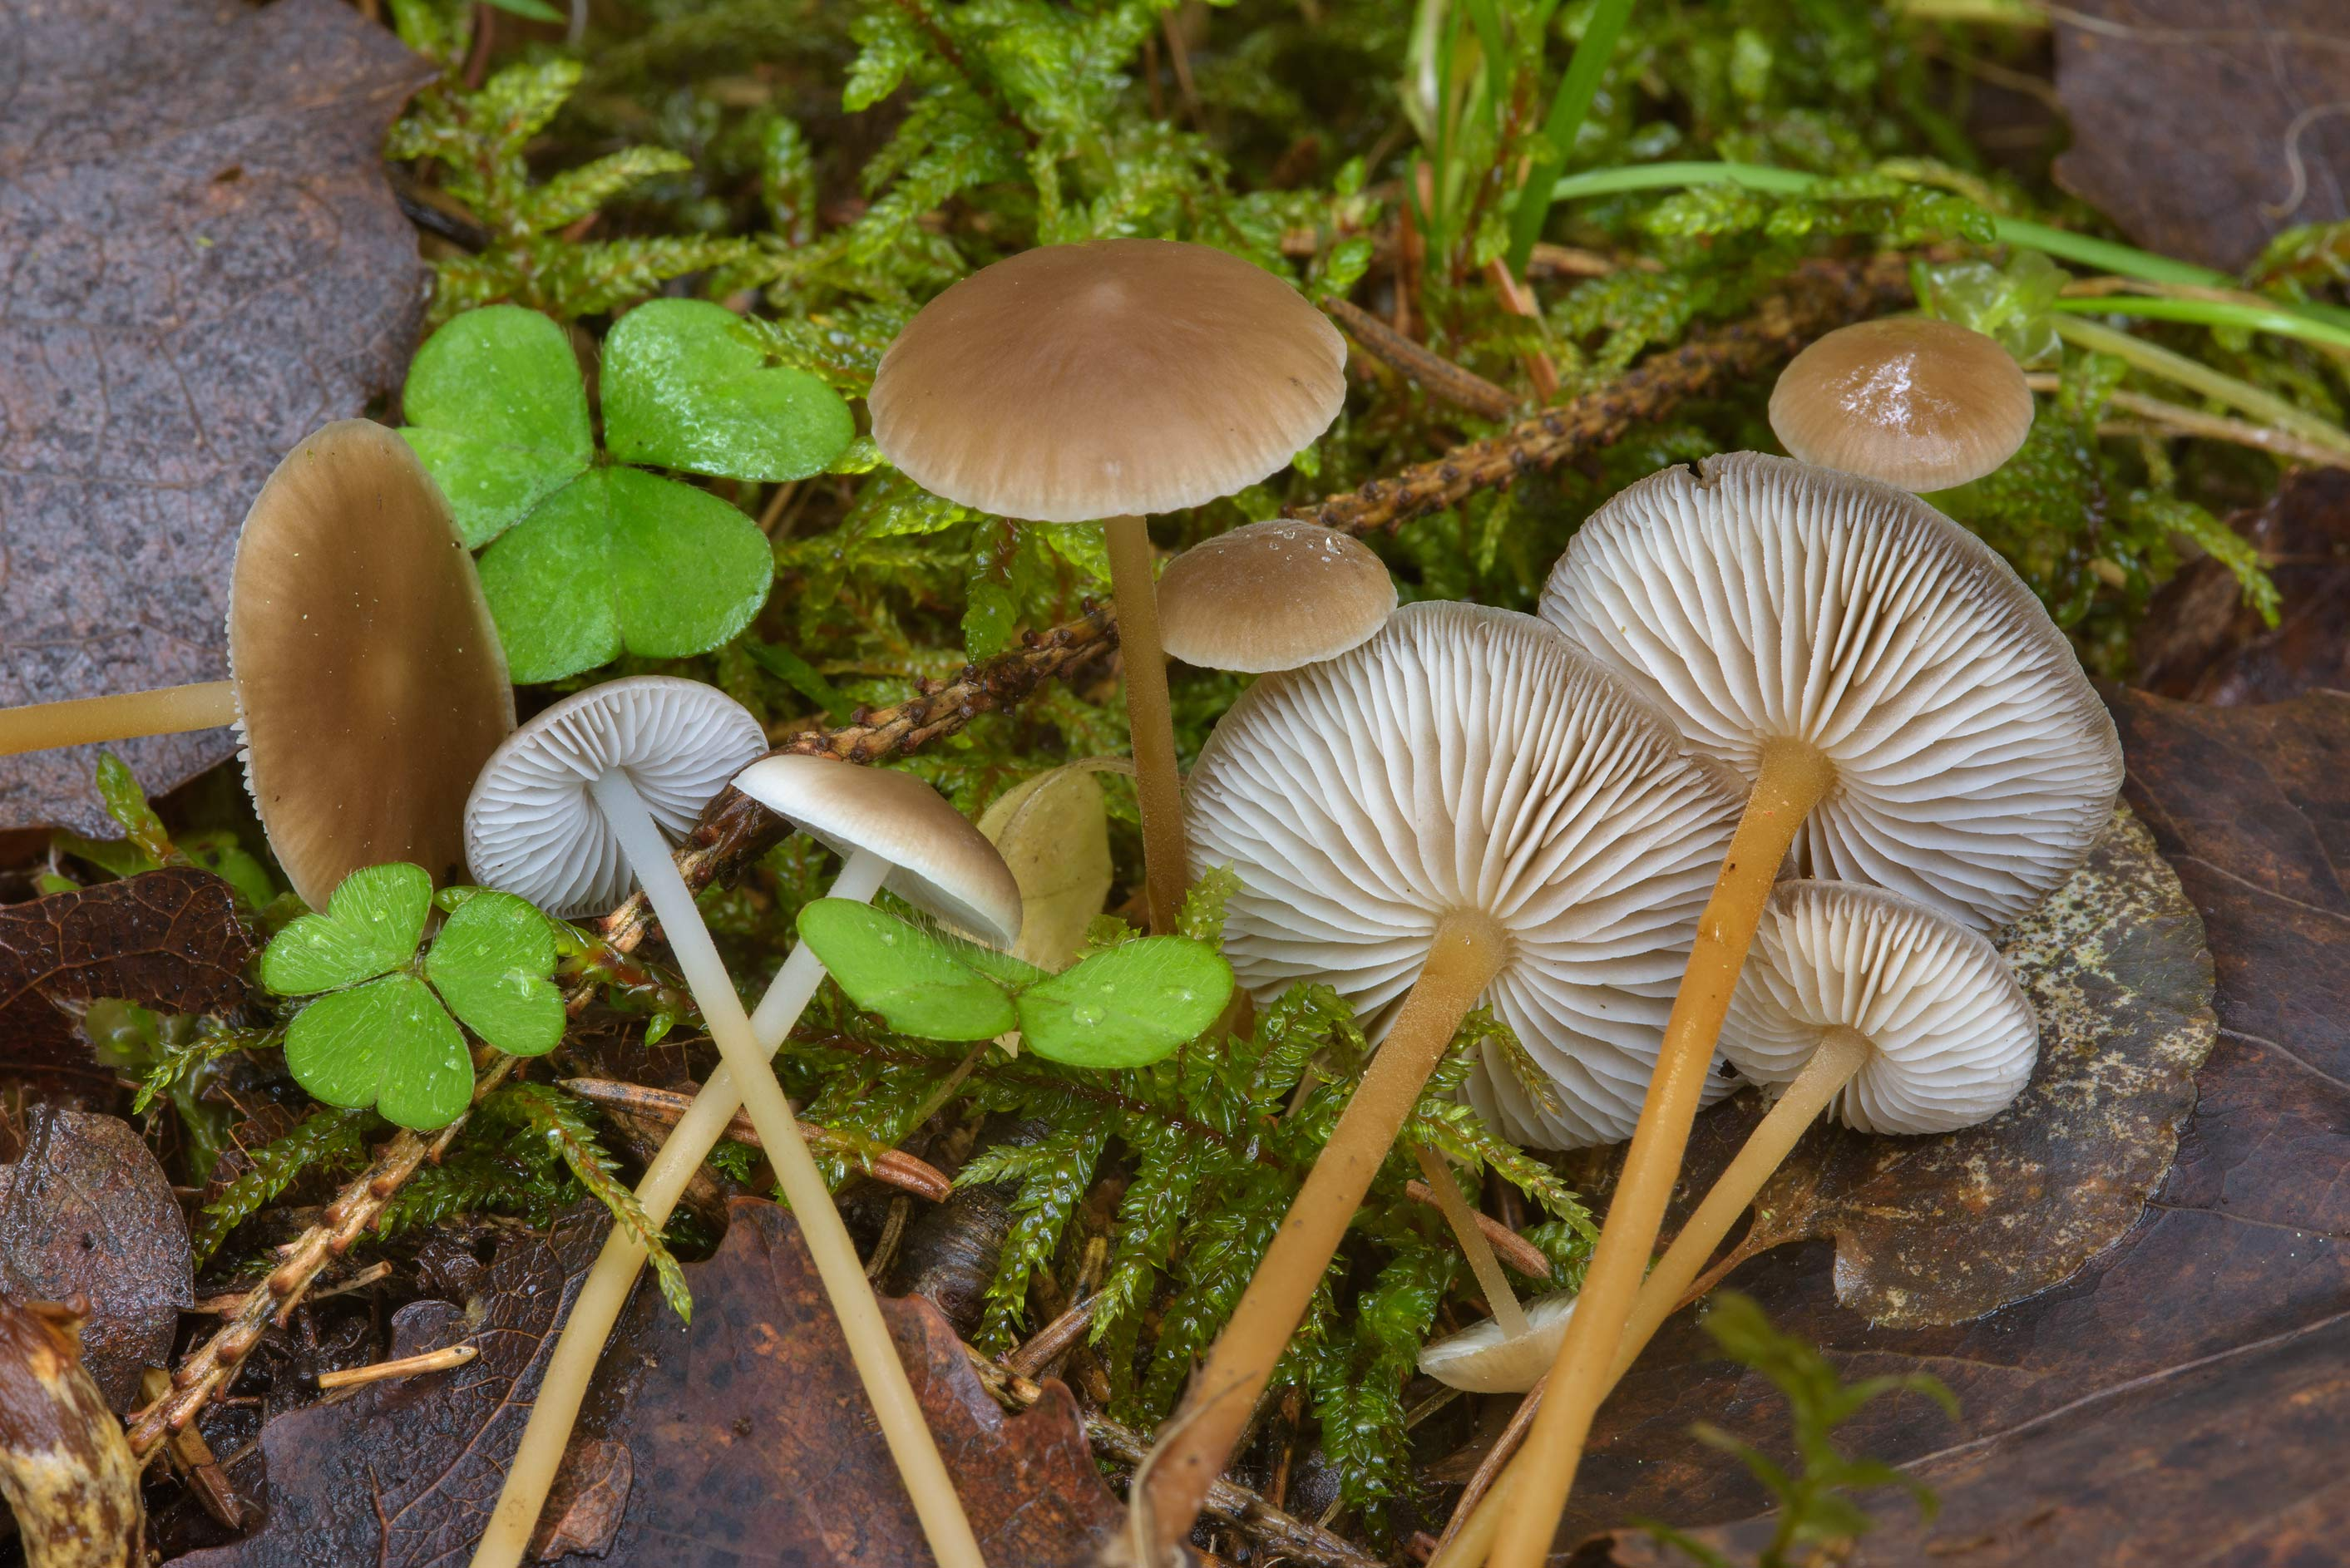 Group of sprucecone cap mushrooms (Strobilurus...south from St.Petersburg, Russia